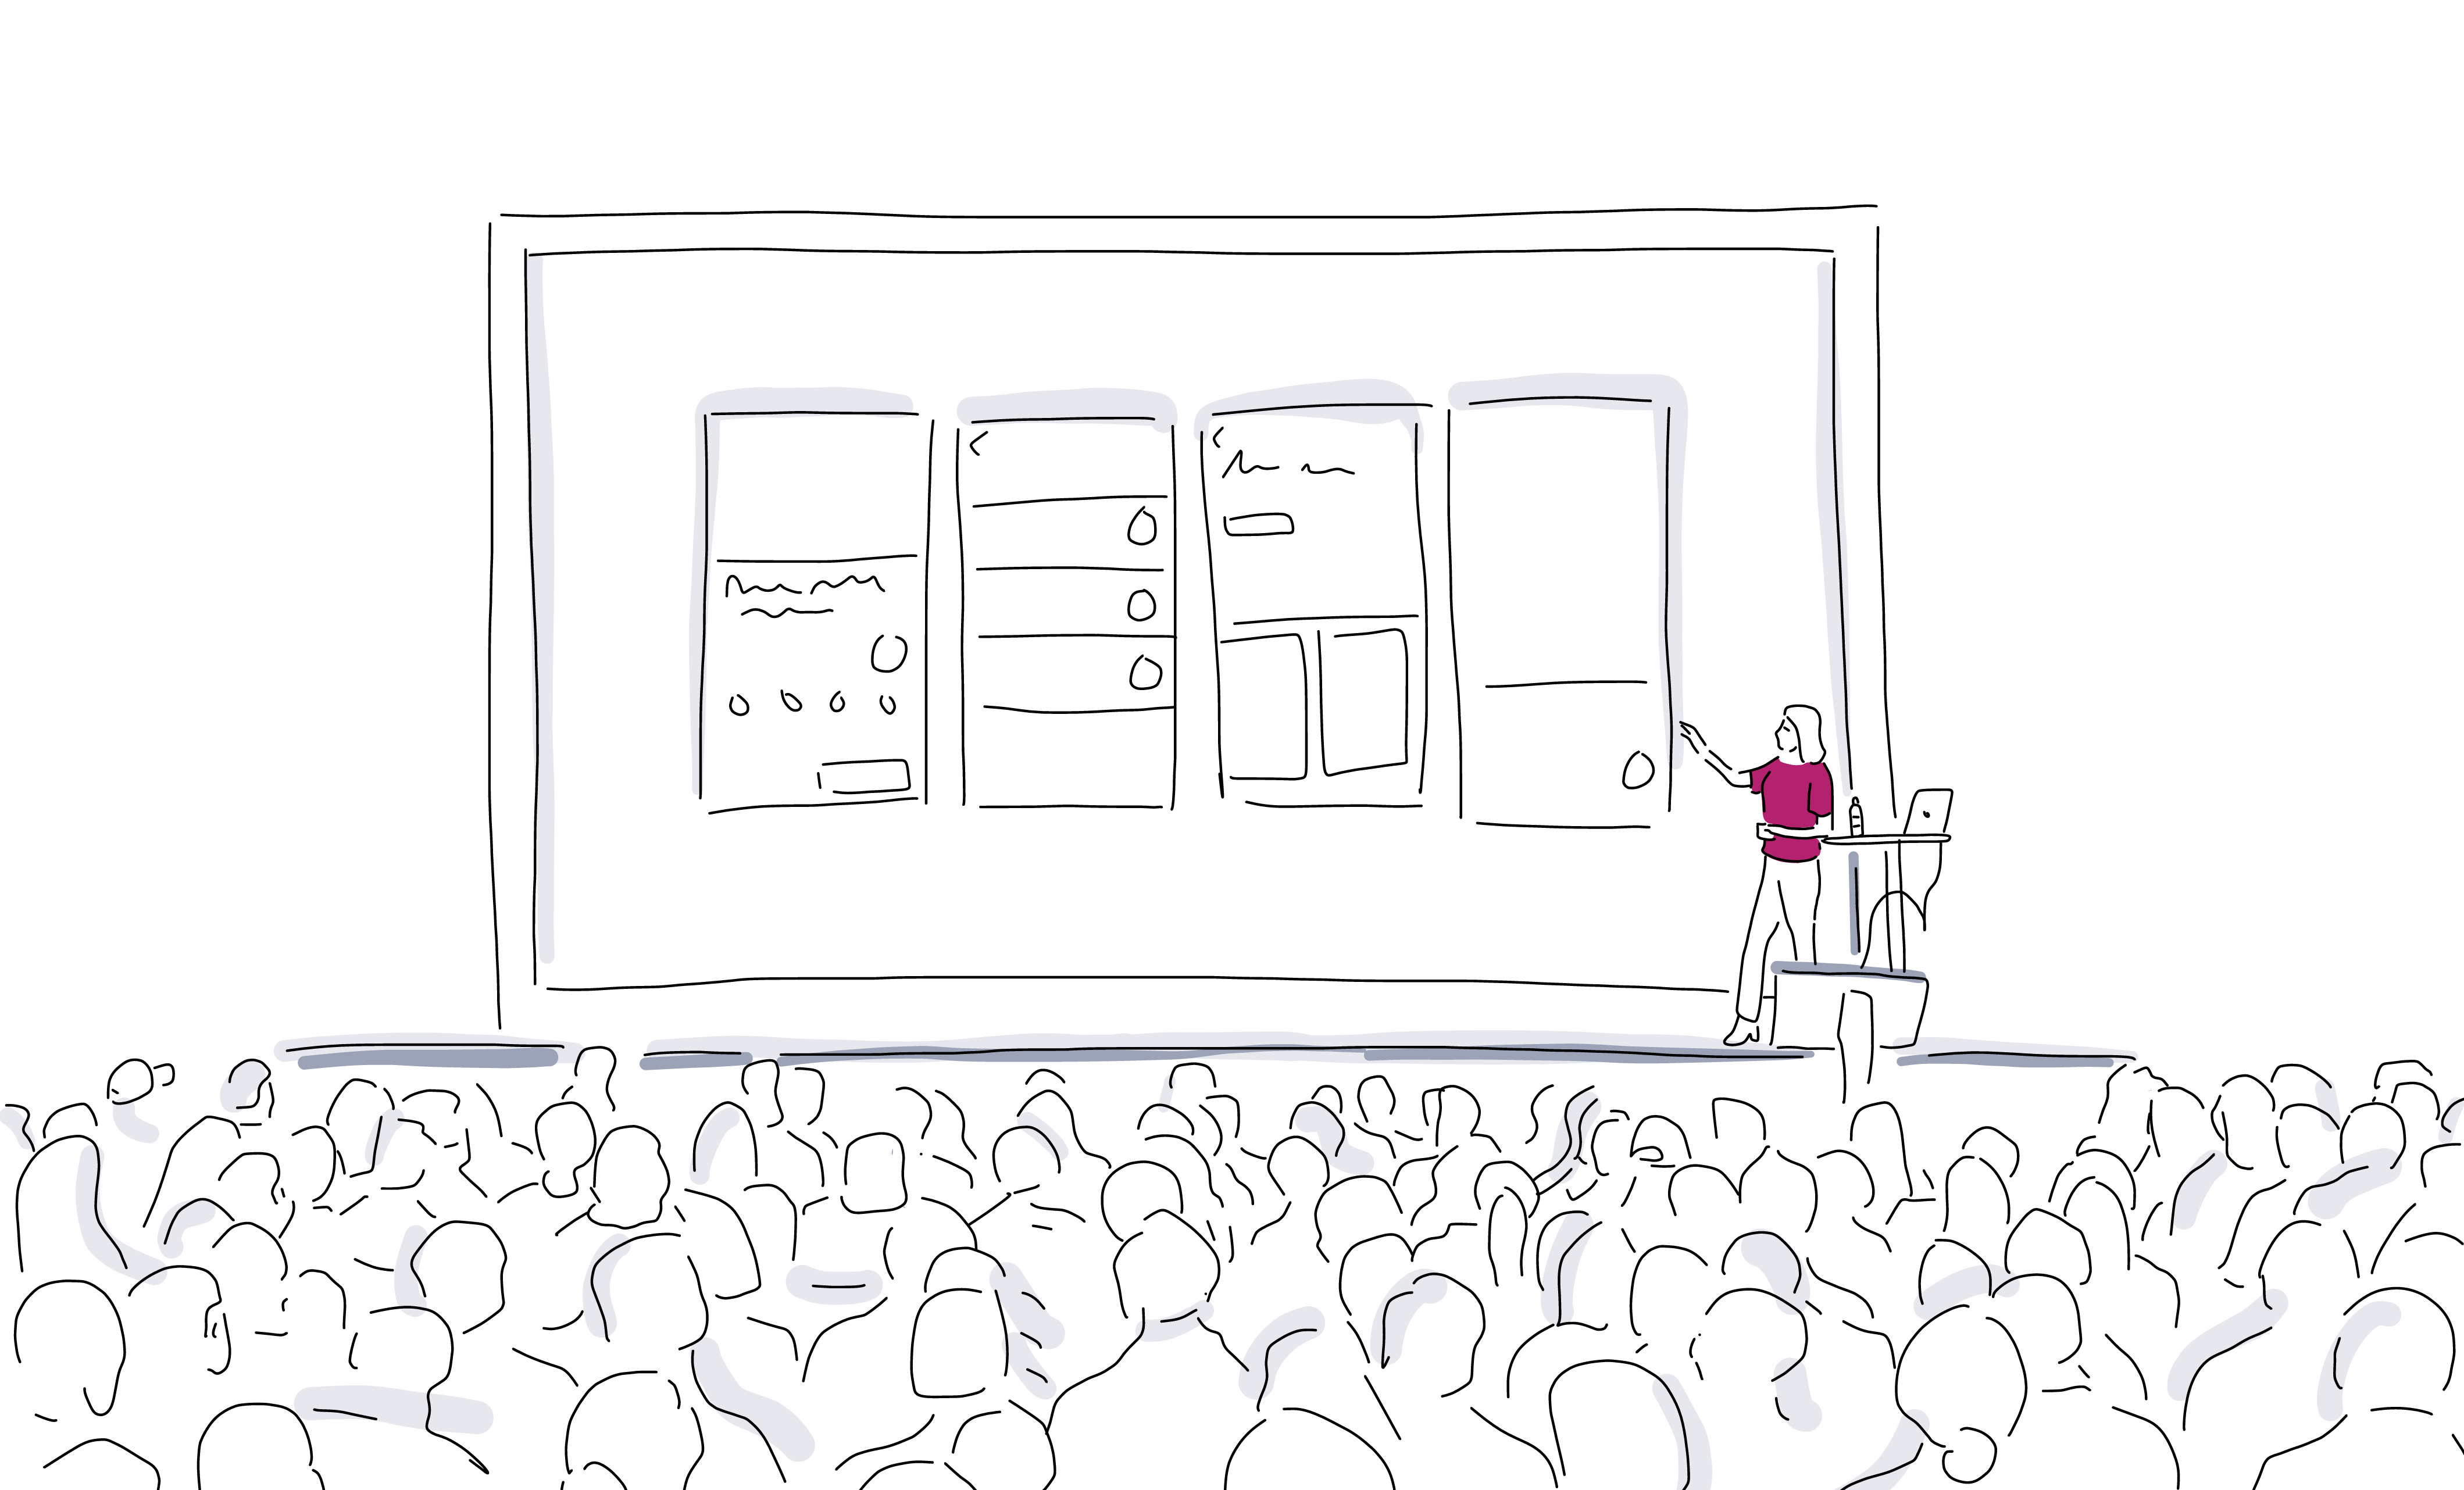 3D illustration of speaker engaging with audience during event presentation on stage